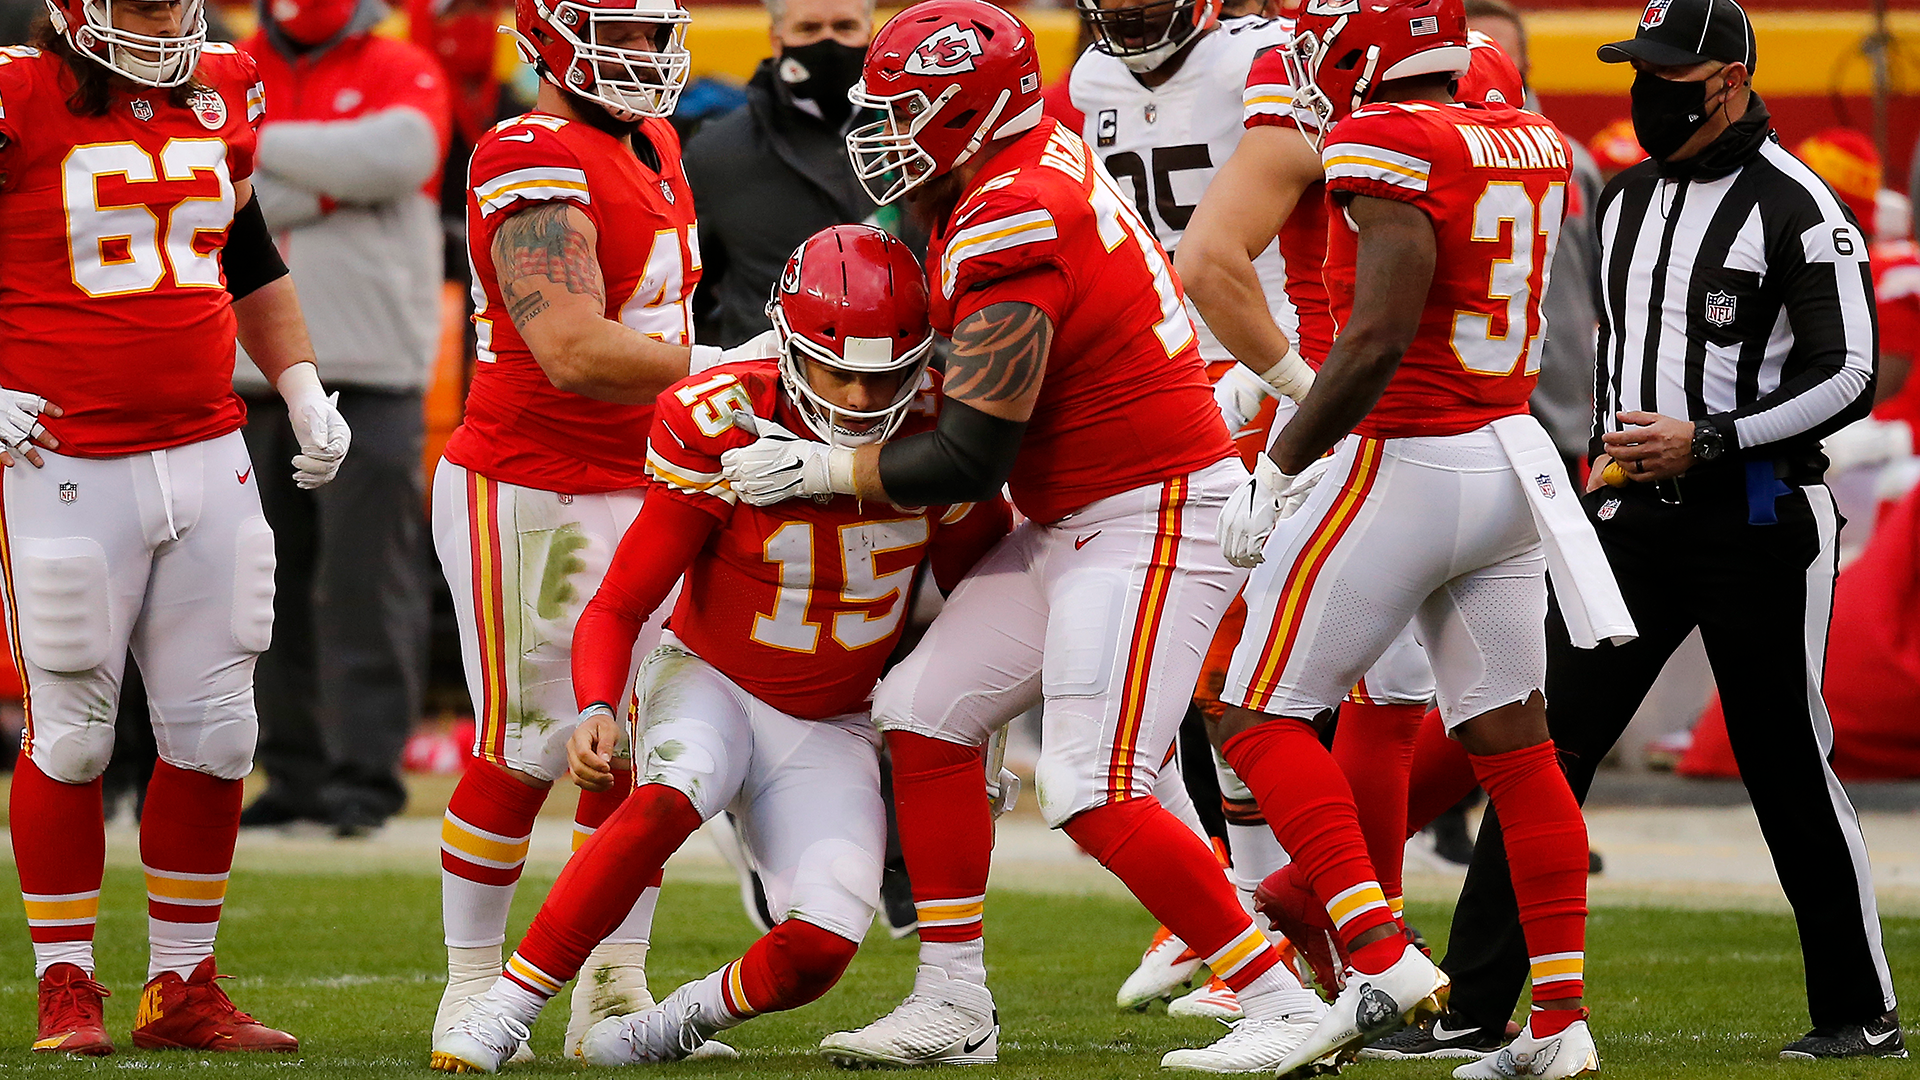 Patrick Mahomes injury update: Will the Chiefs QB play vs. Bills in AFC championship? - sporting news